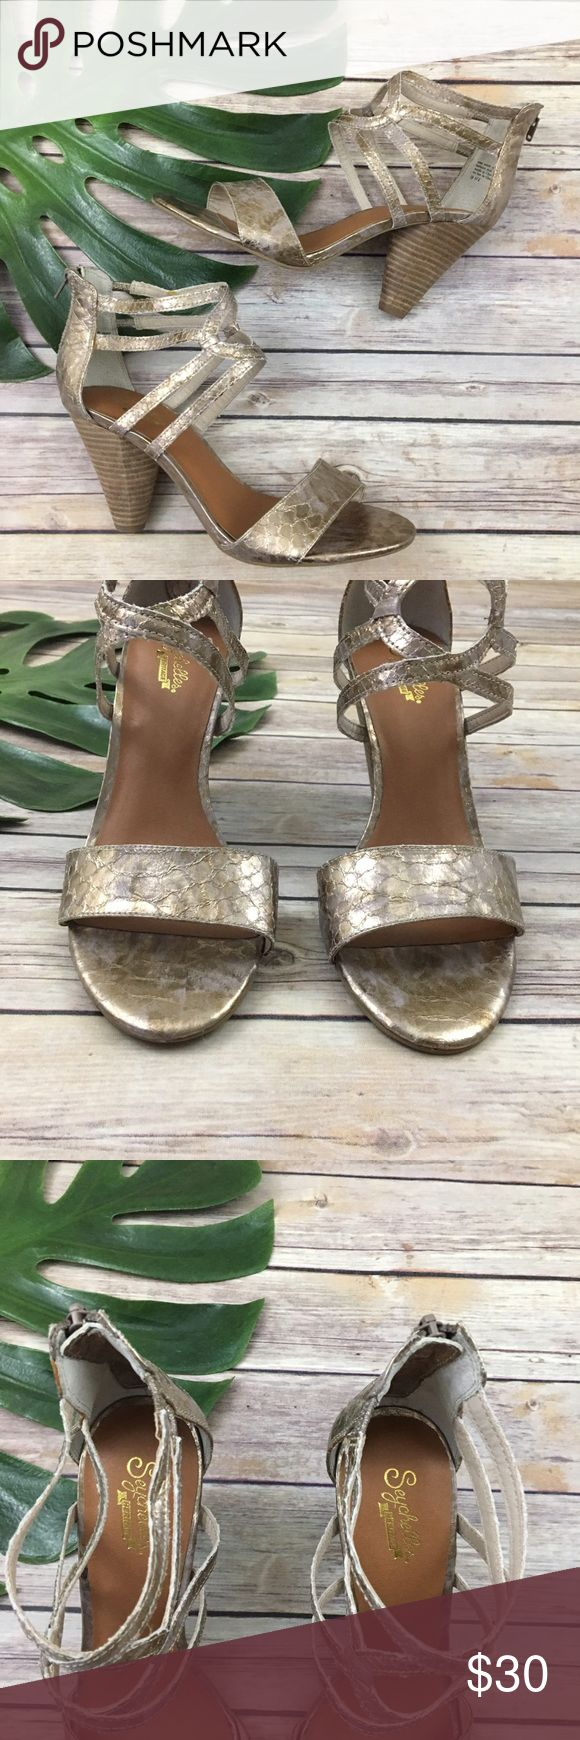 Seychelles gold Metallic Strappy heels Seychelles gold strappy heels, size 9.5. They are free from any rips or stains. The heel is about 3.5 inches tall. Seychelles Shoes Sandals